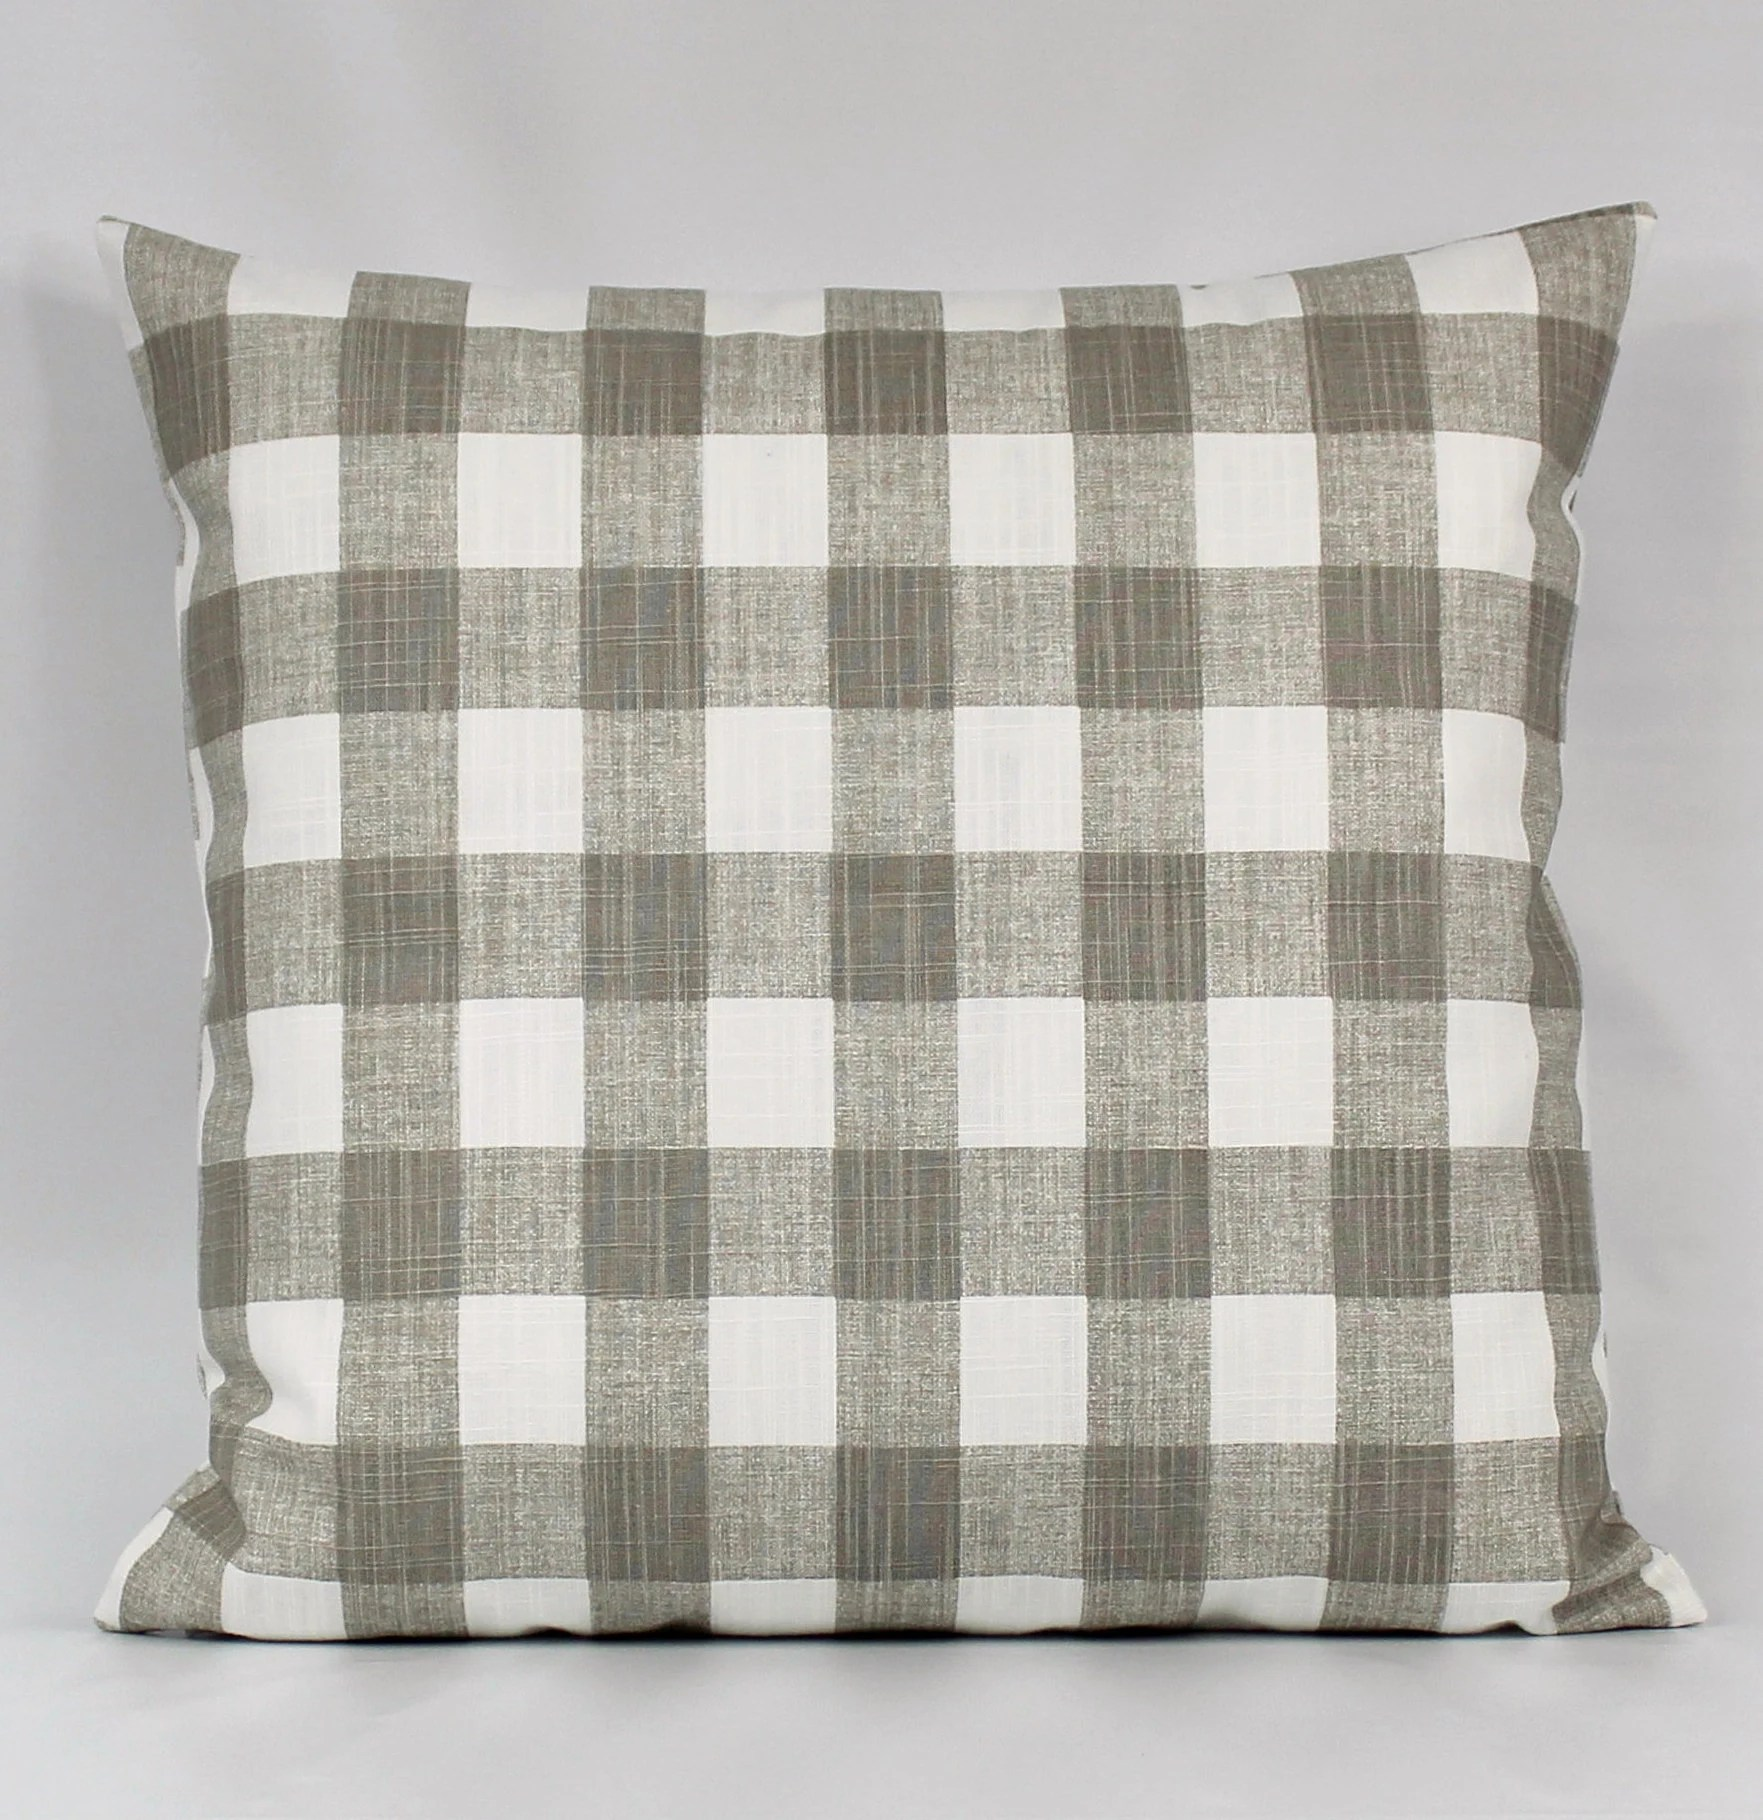 Plaid Taupe Taupe Buffalo Plaid Pillow Cover Tan Buffalo Check Taupe White Throw Pillow Taupe Gingham Pillow Farmhouse 1 5 Inch Squares Zipper